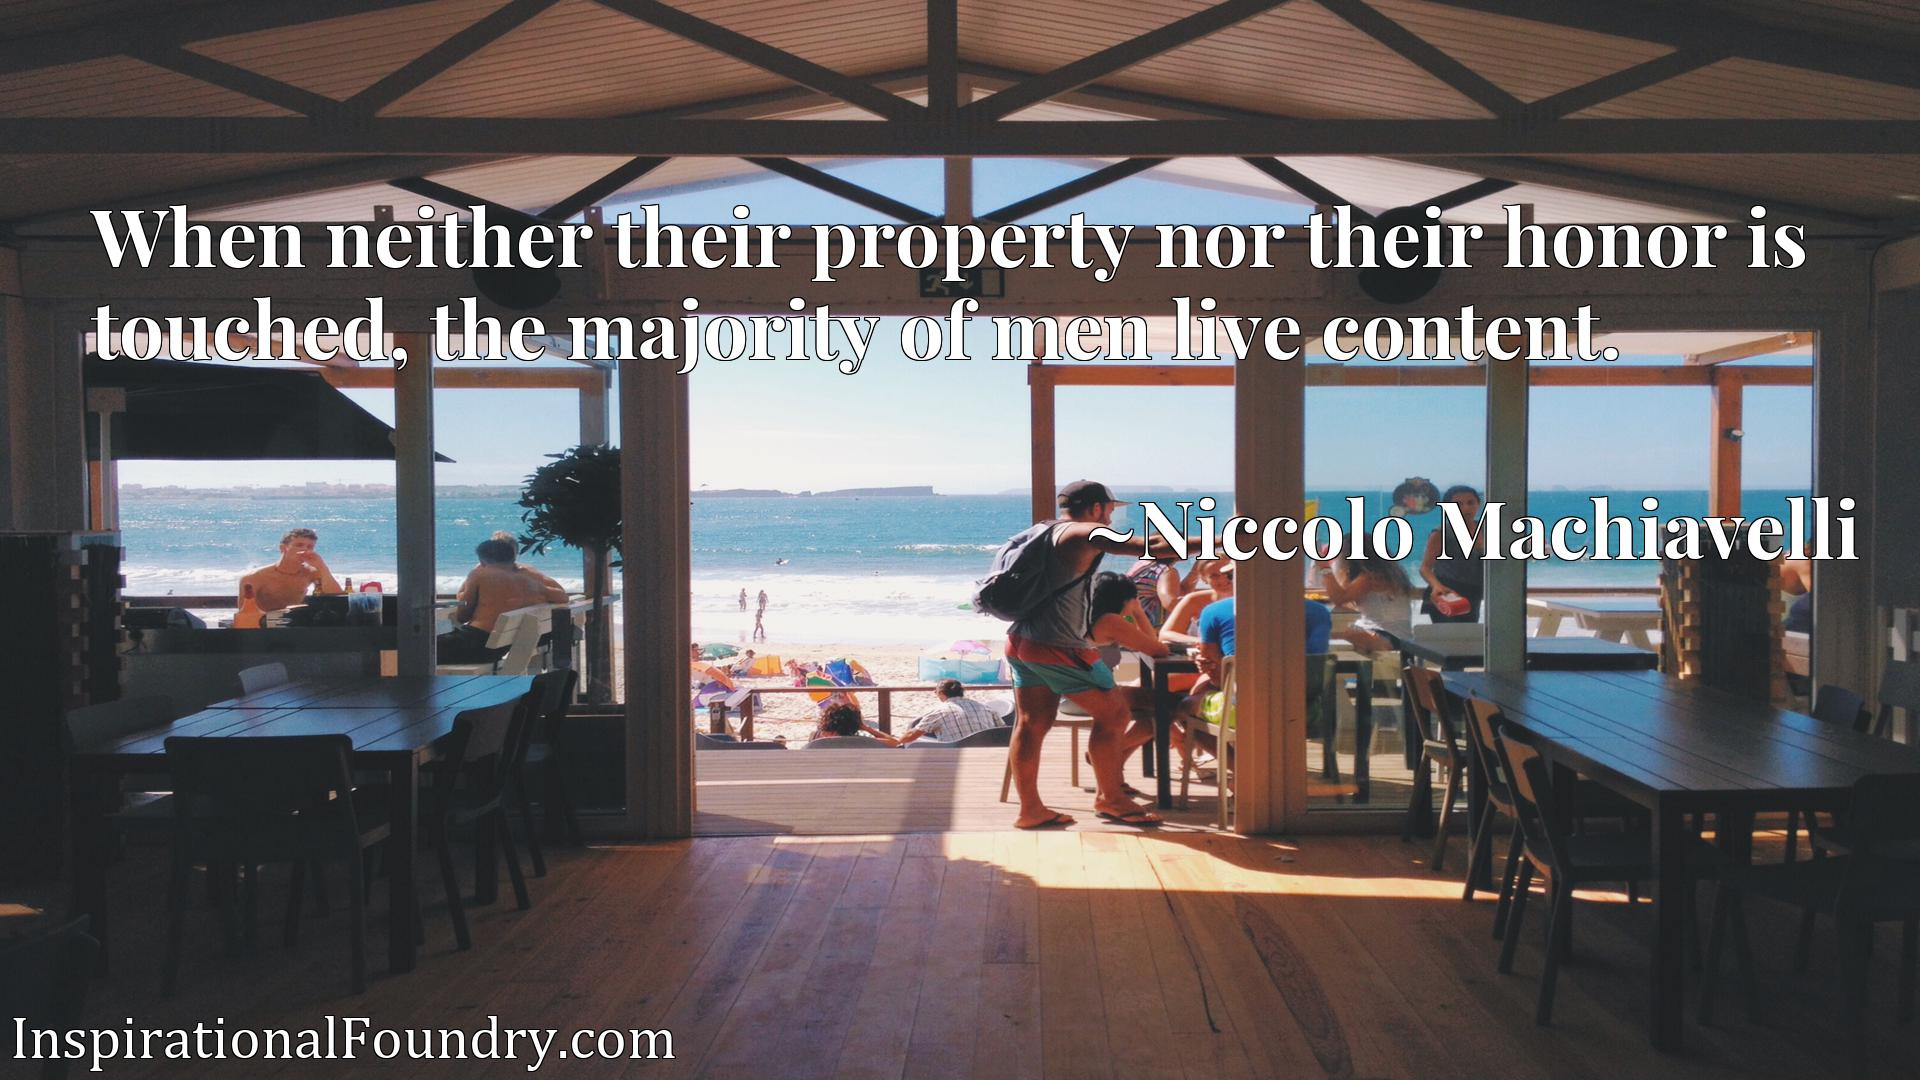 When neither their property nor their honor is touched, the majority of men live content.